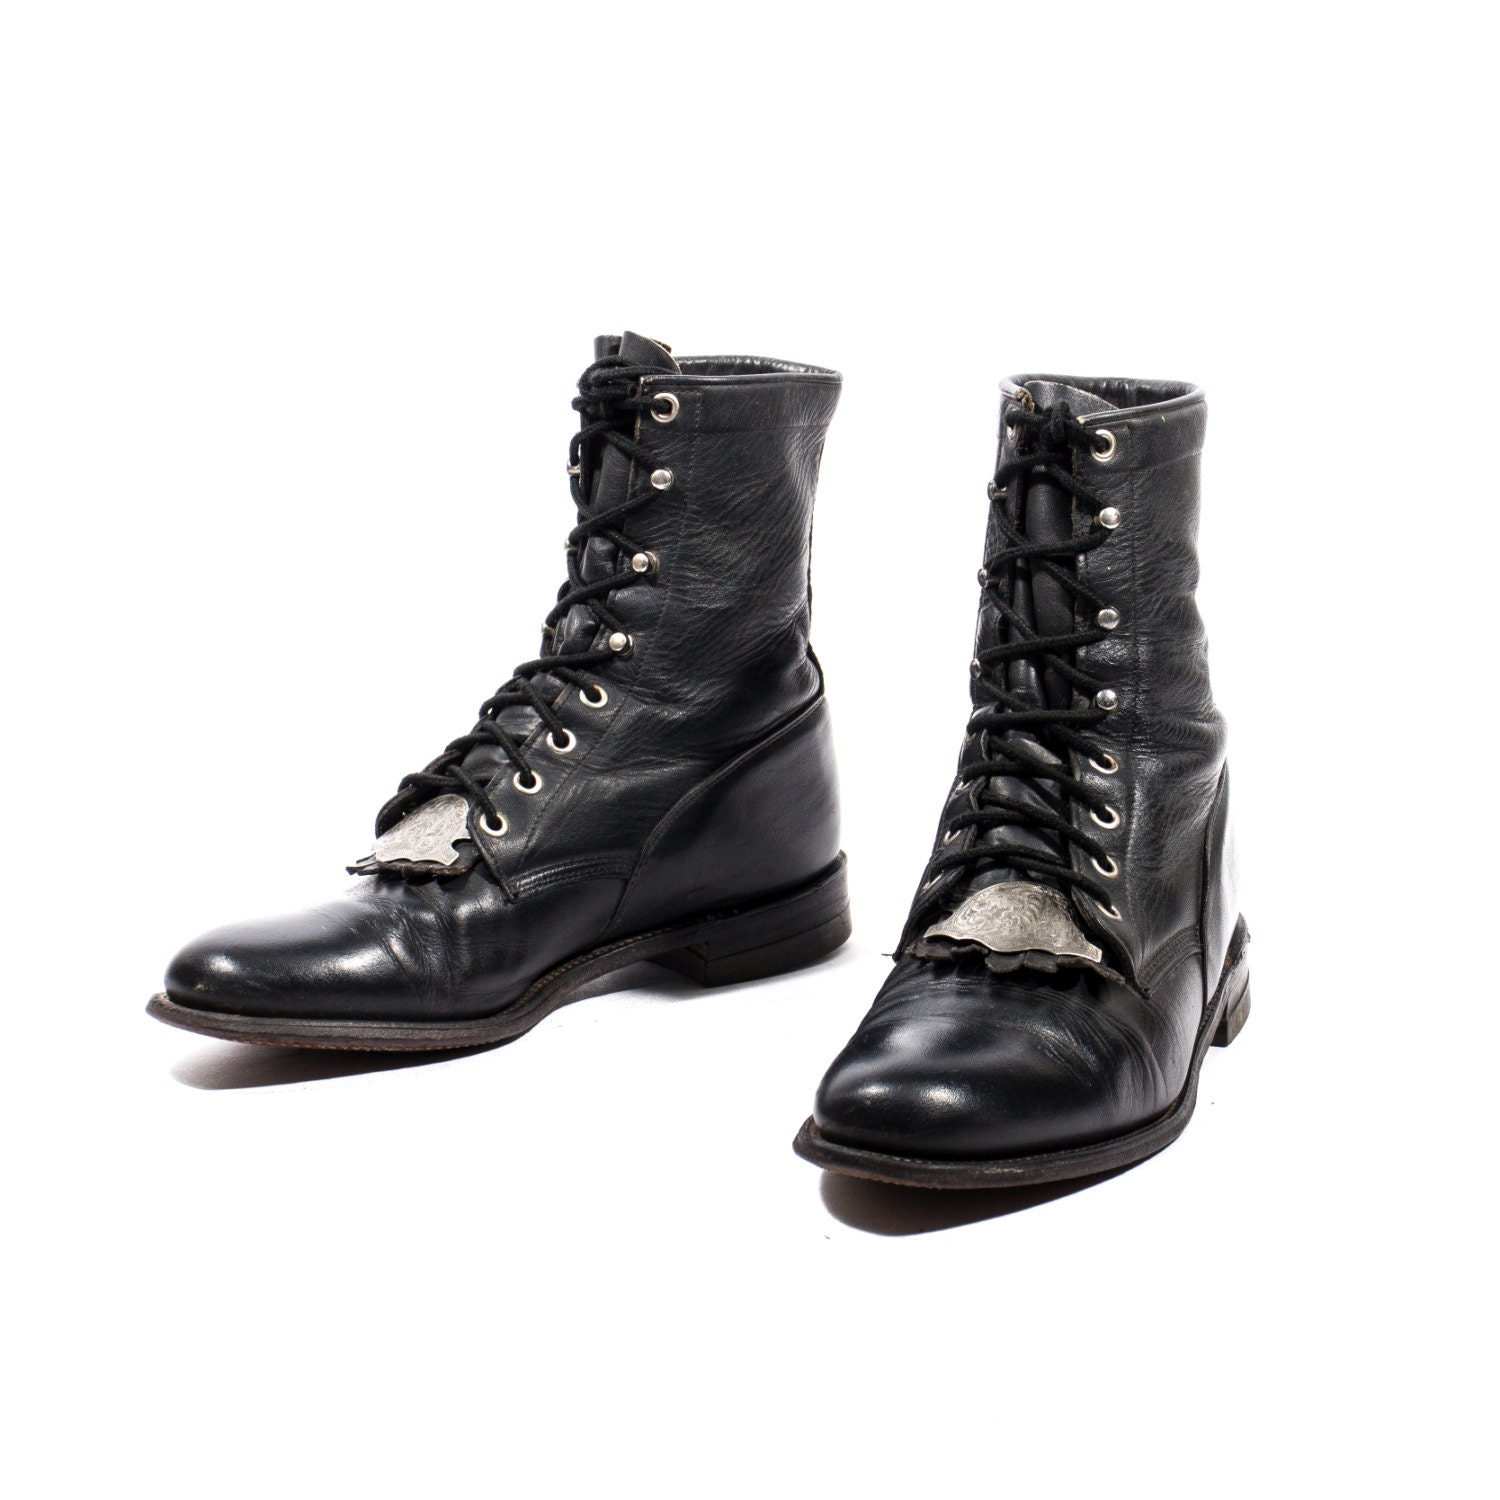 Vintage Justin Lace Up Ropers Black Leather Lace Up Boots With